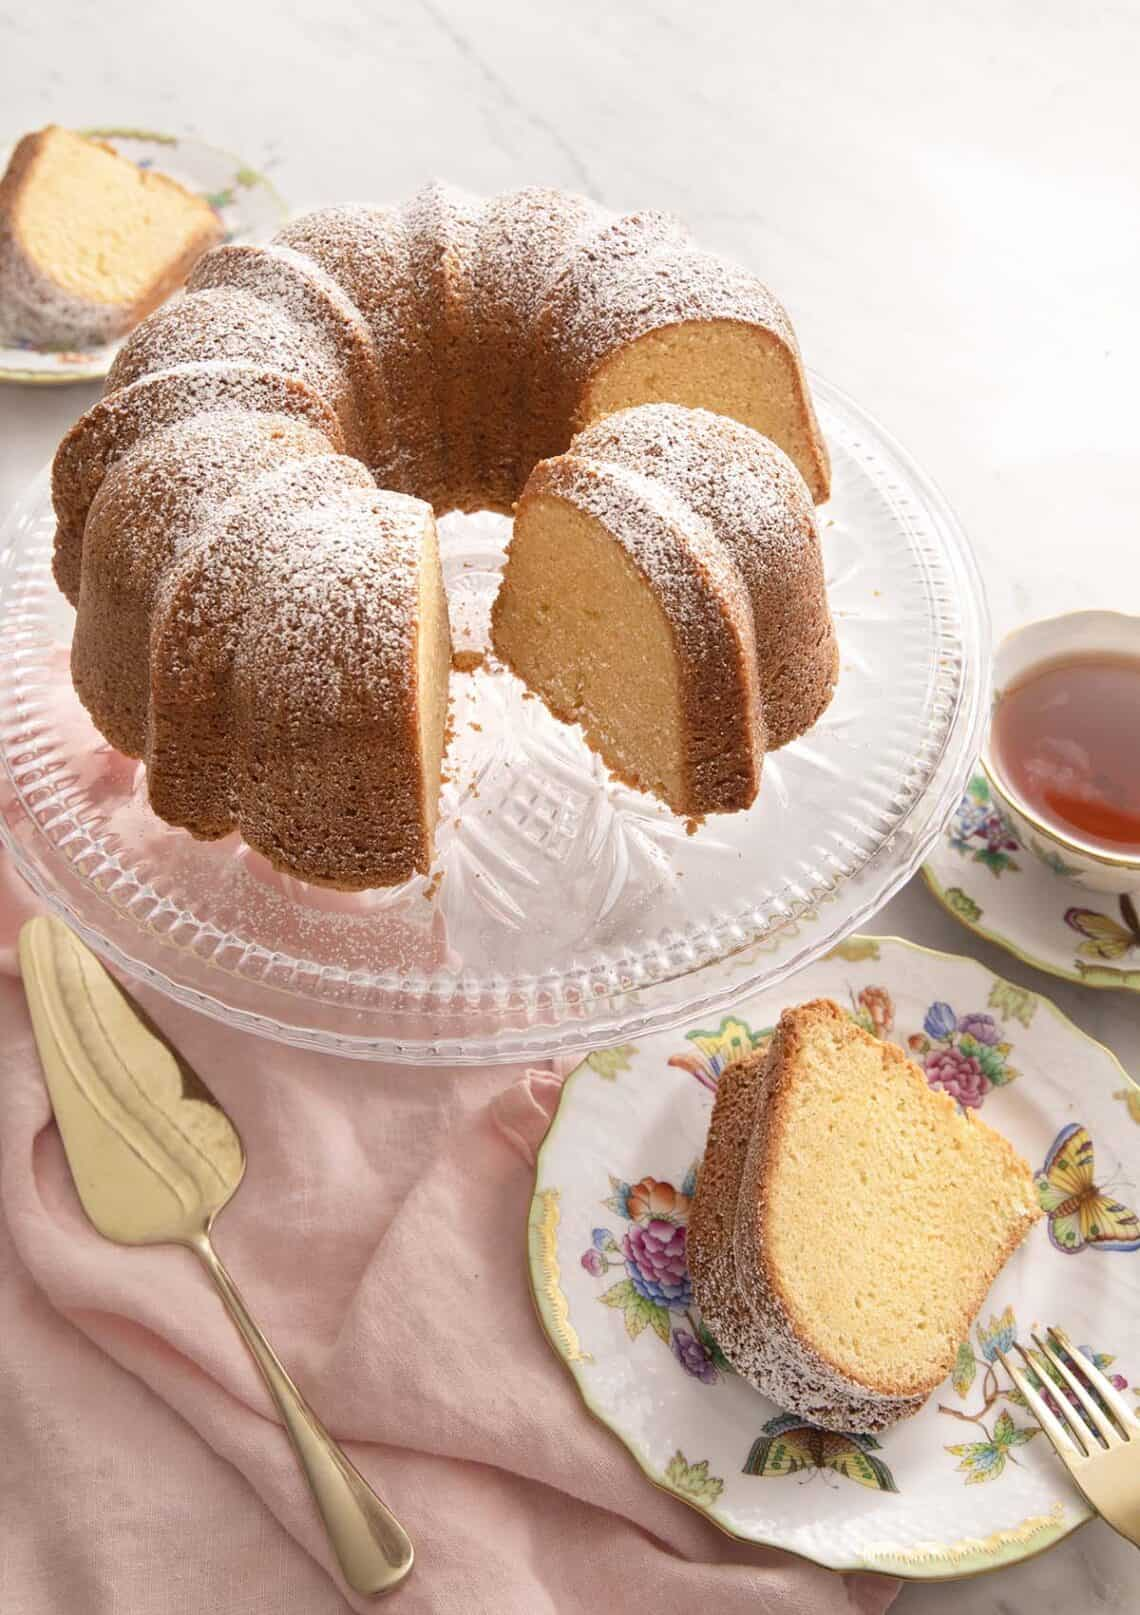 A sour cream pound cake on a cake stand with a slice on a plate